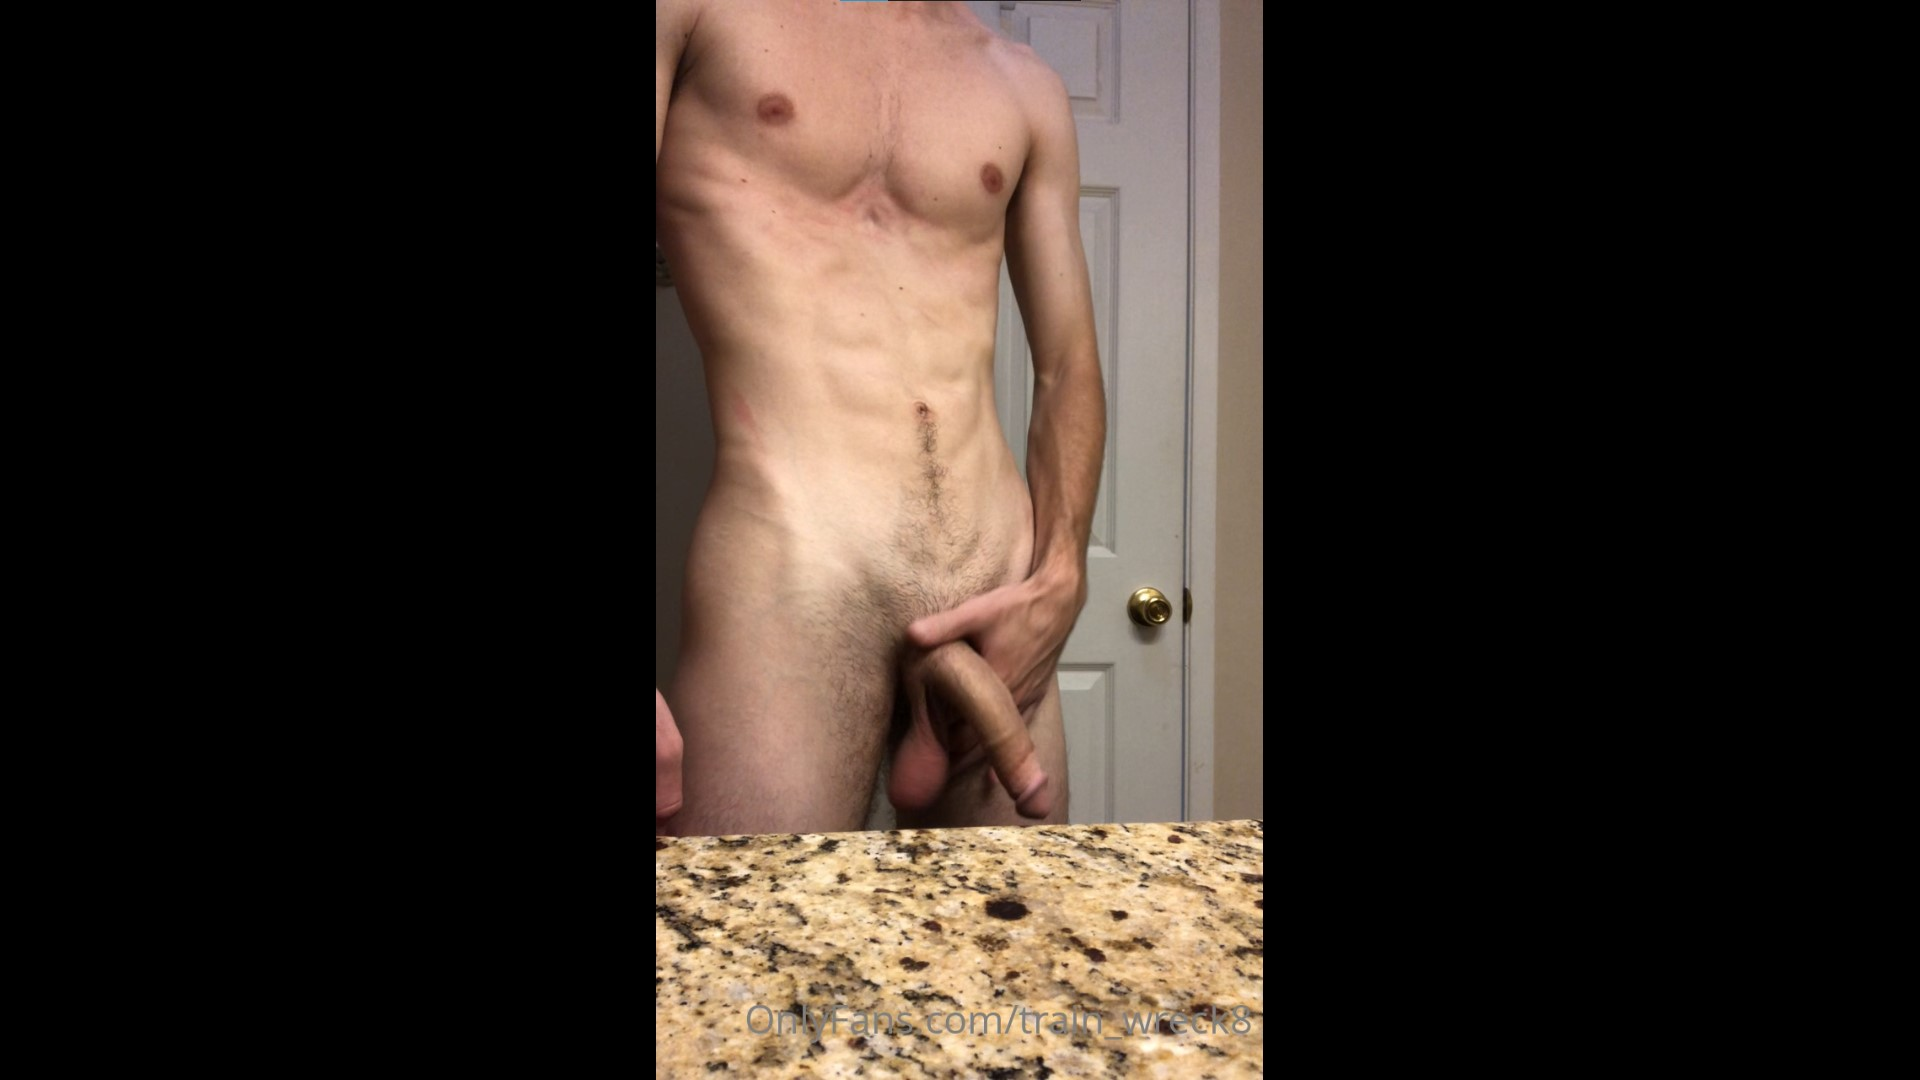 Showing off my cock and balls after a shower - train_wreck8